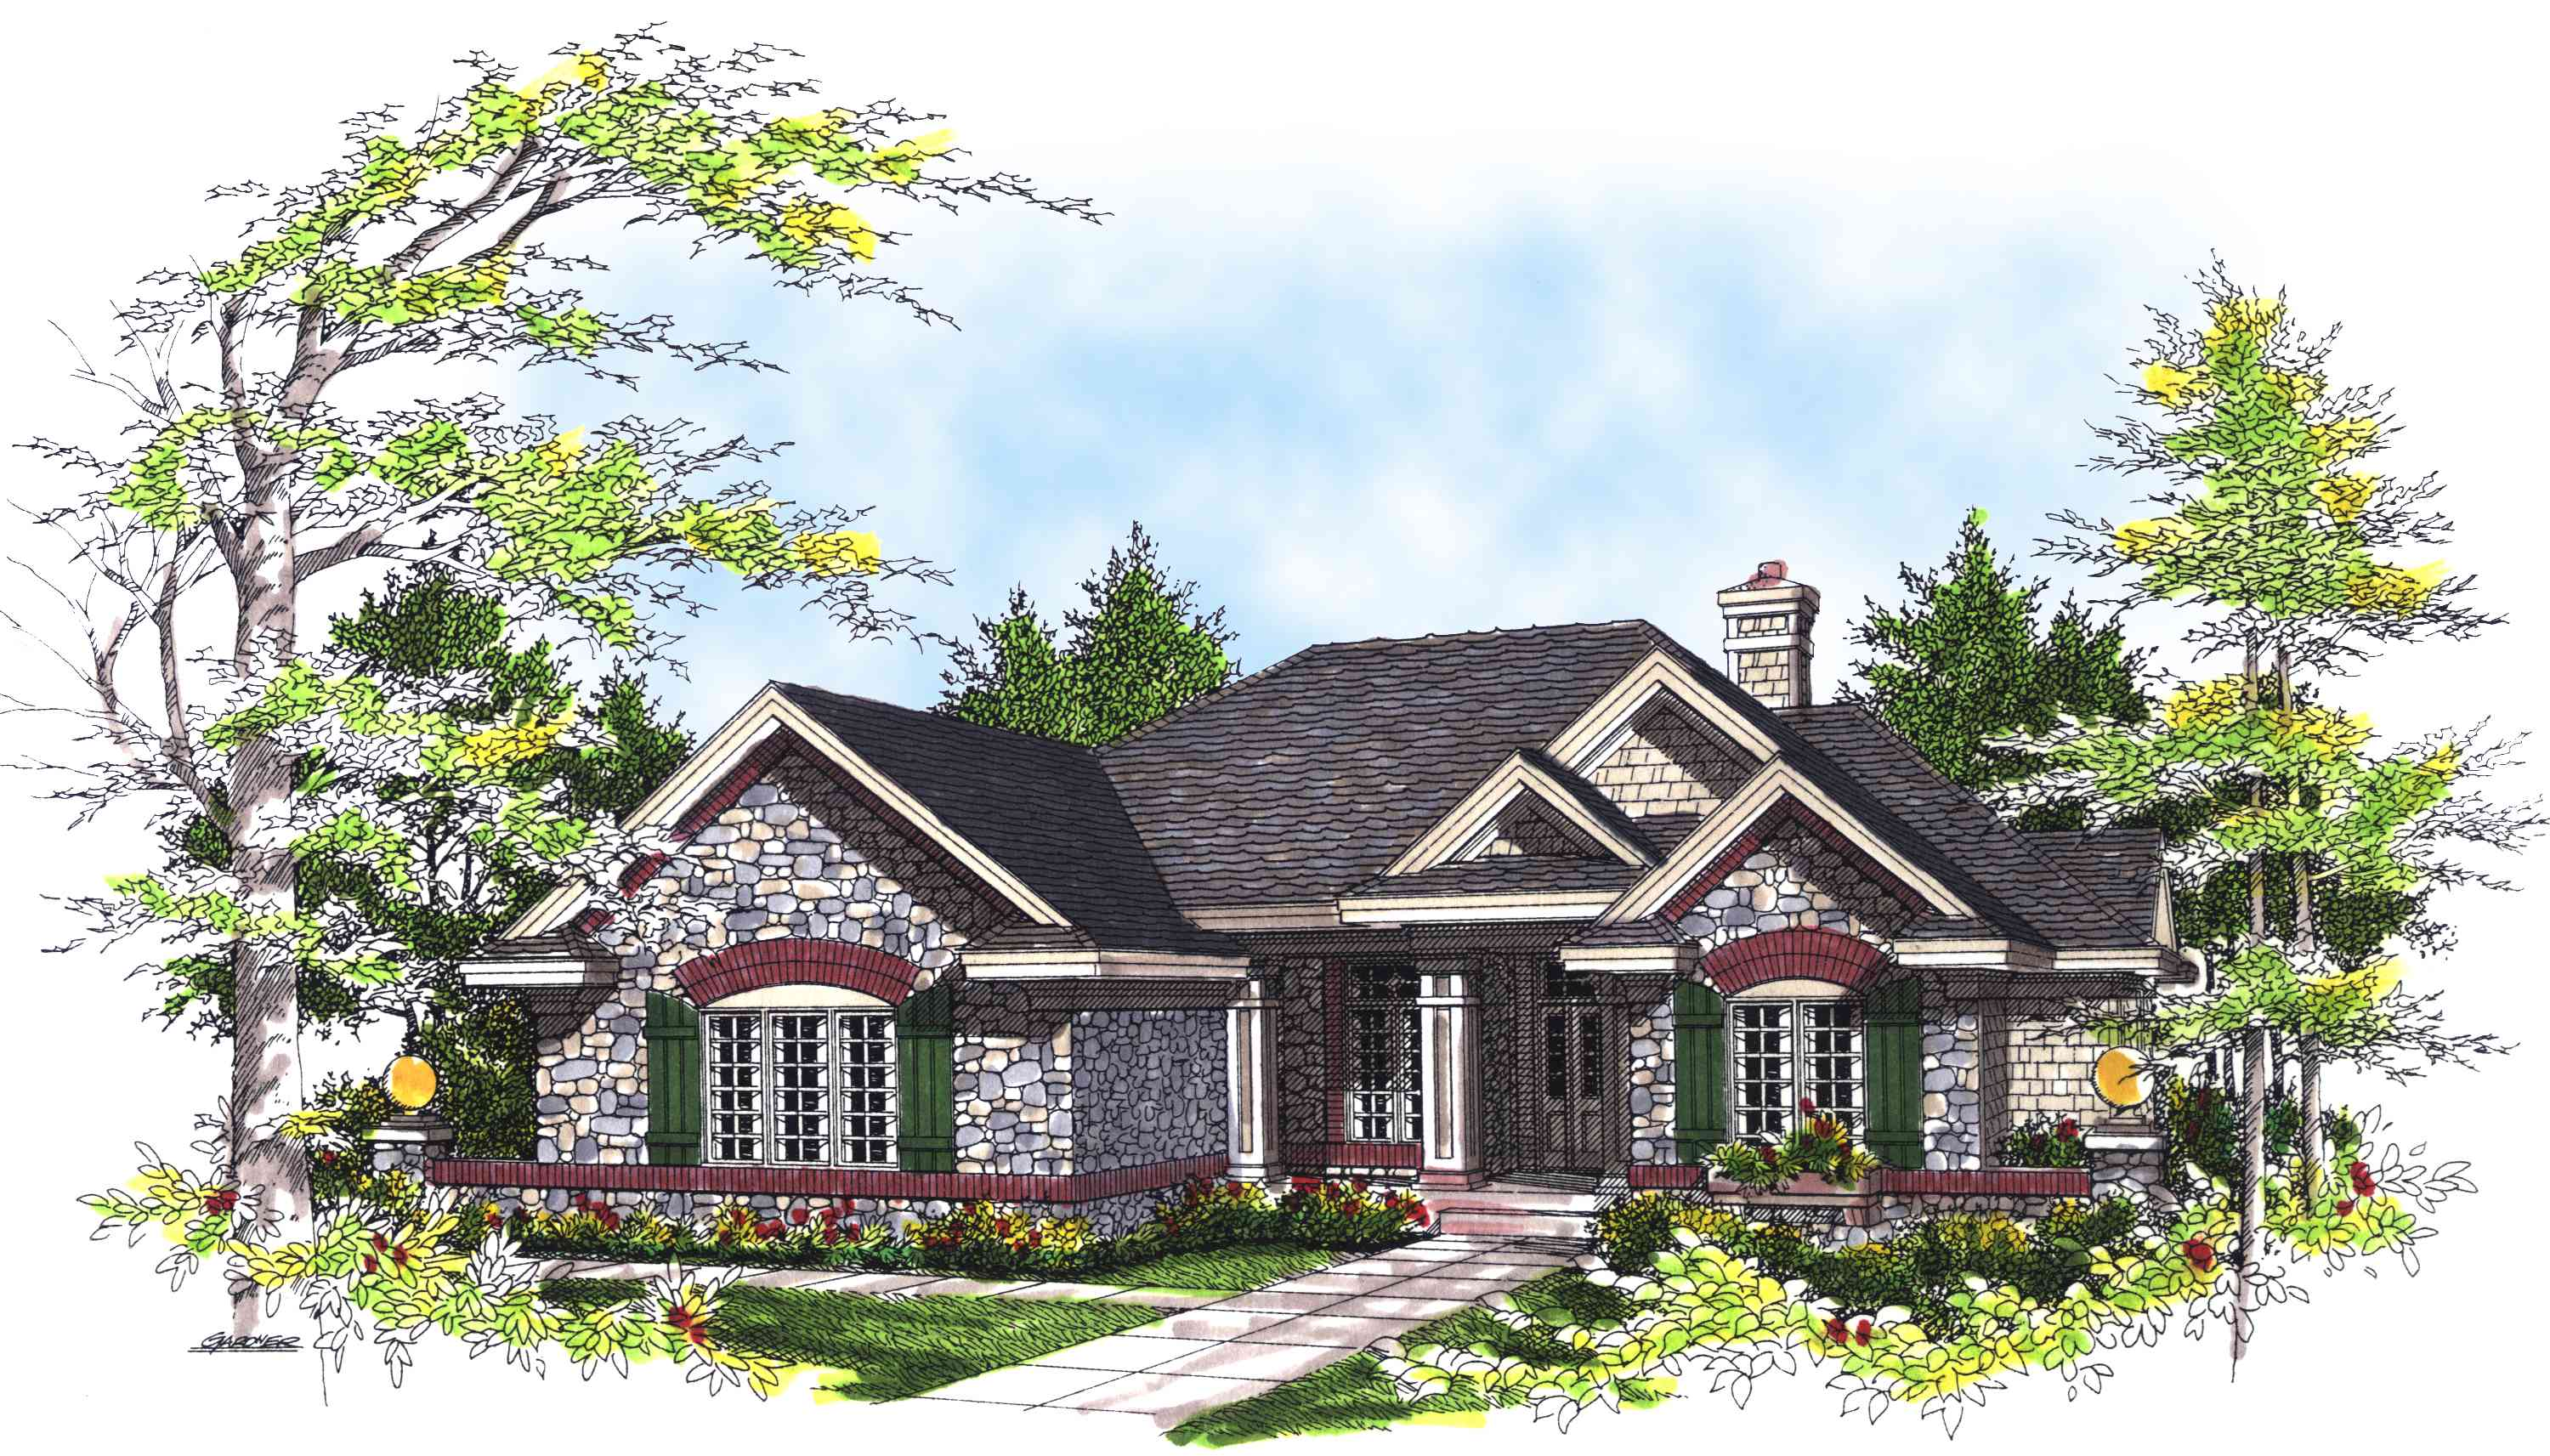 Lovely Stone Cottage 89487ah Architectural Designs House Plans